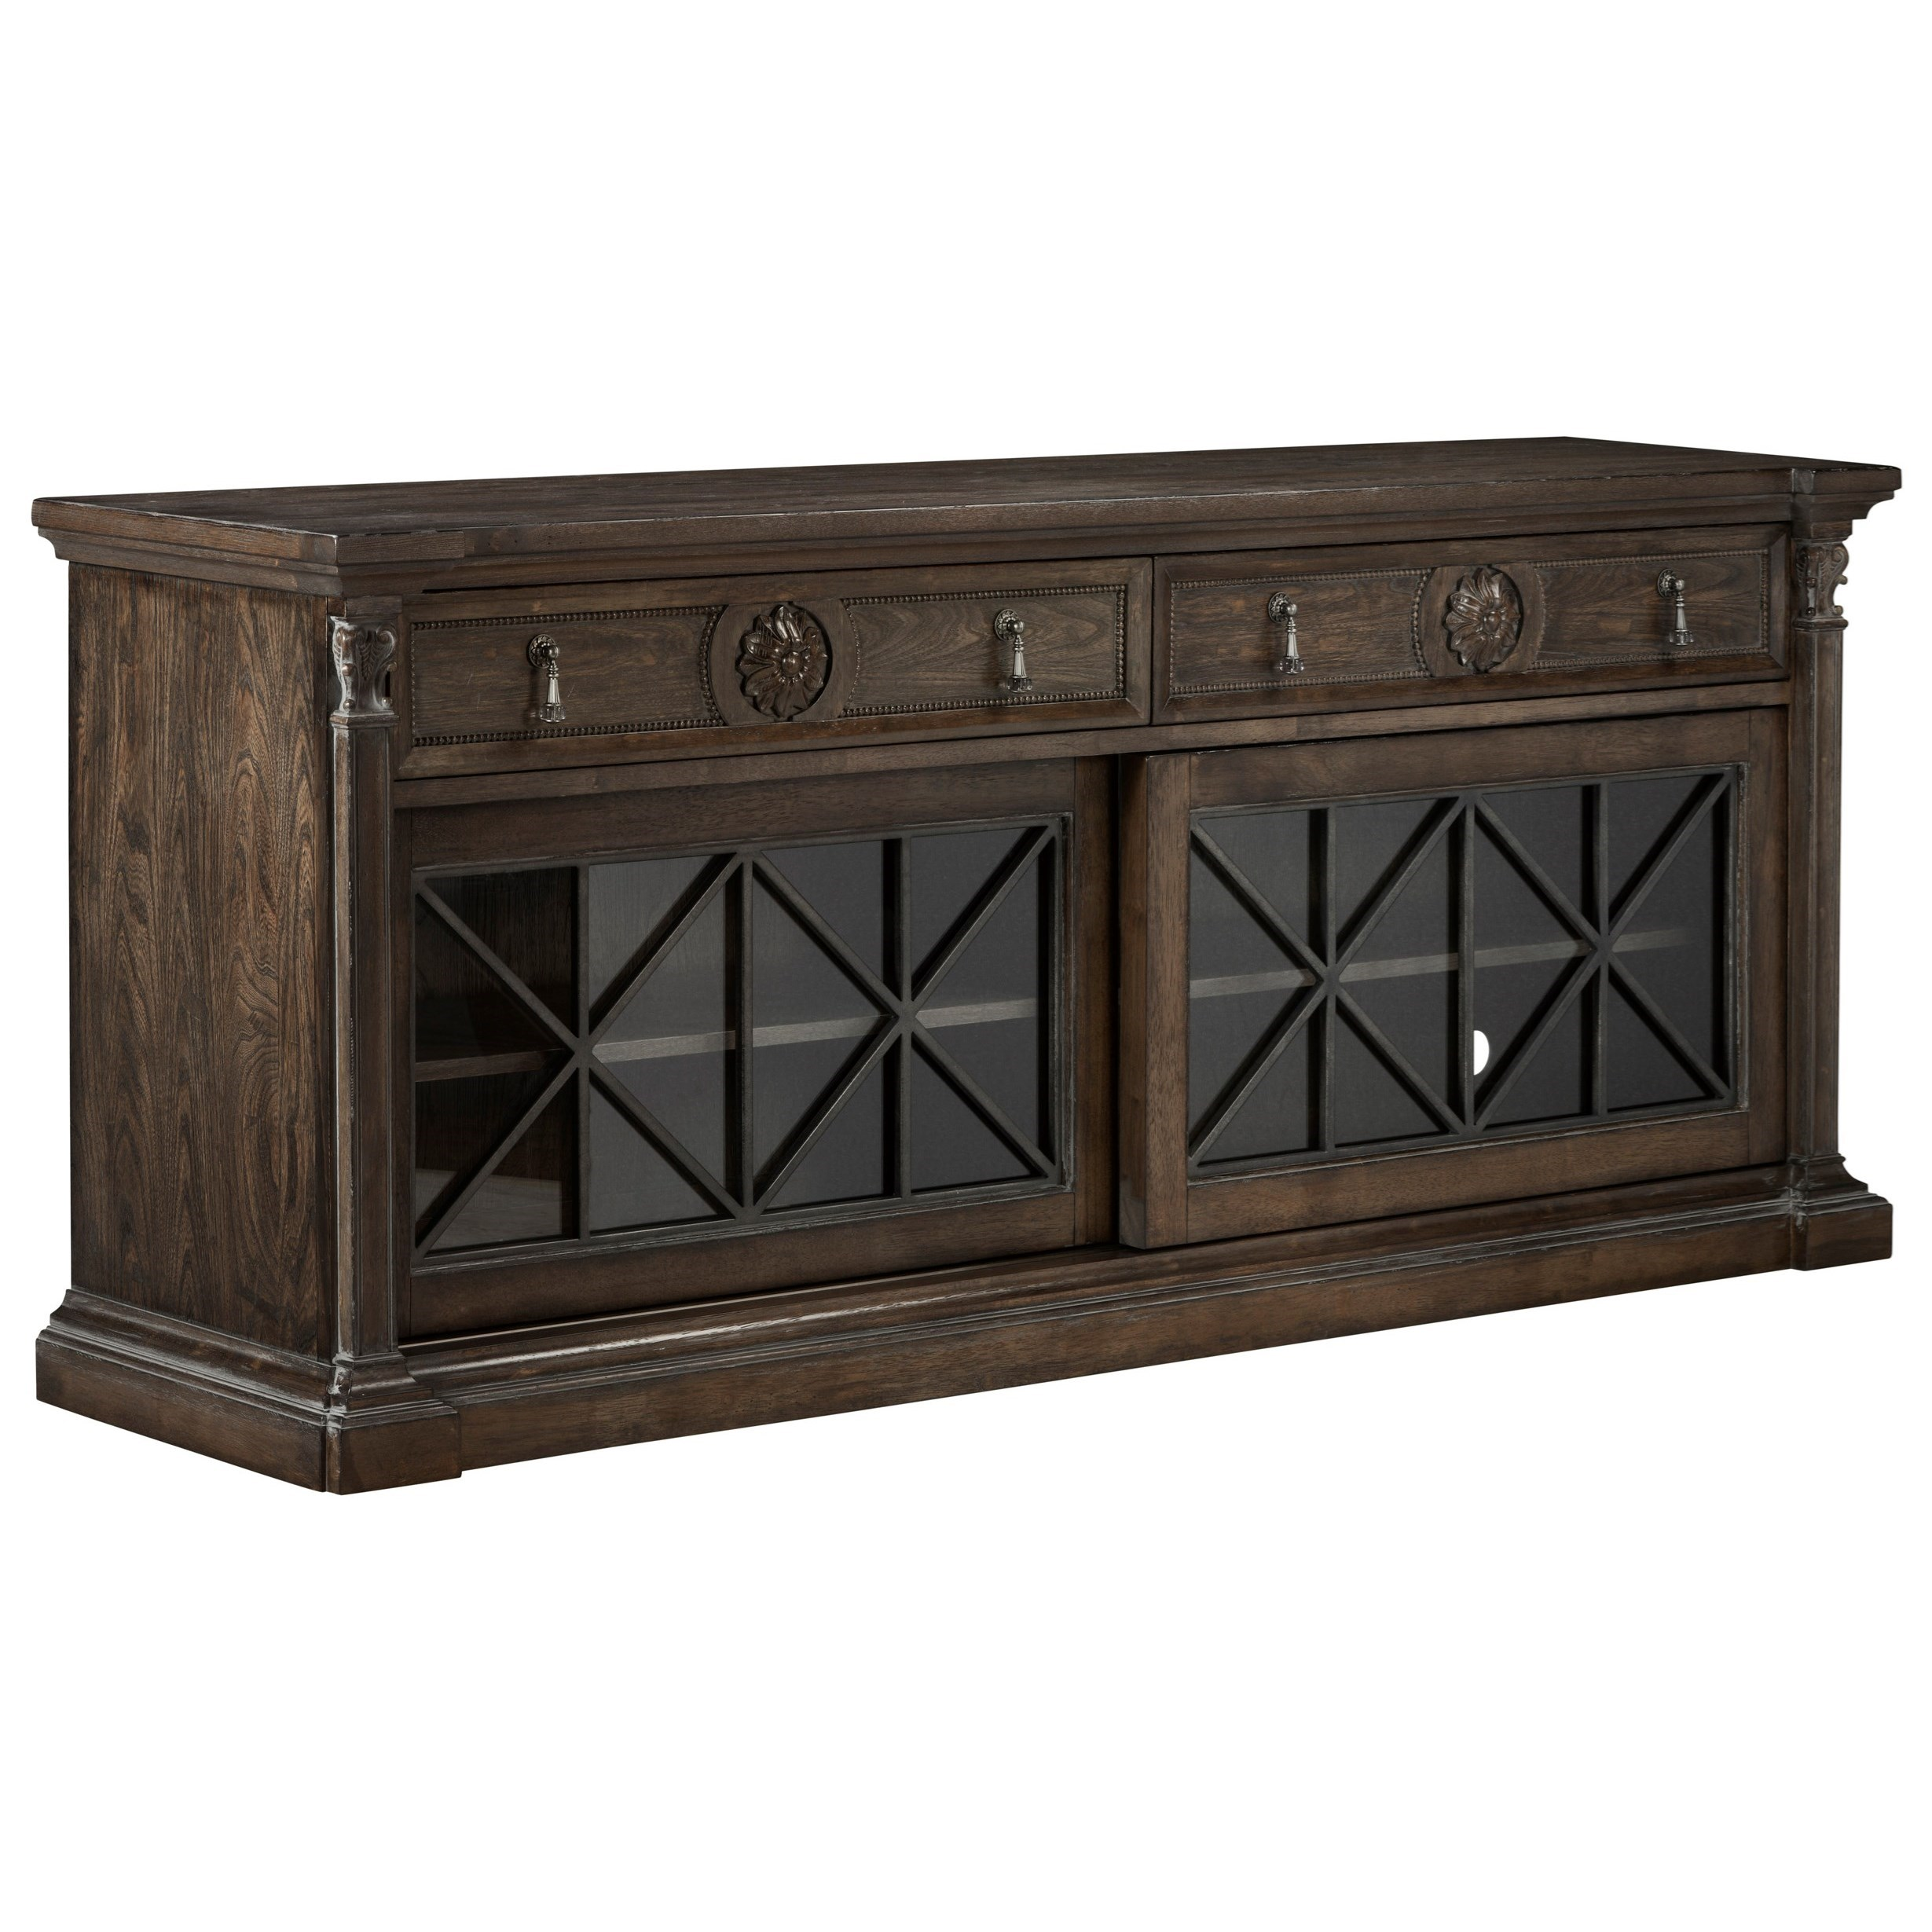 Vintage Salvage  Townley Entertainment Console by A.R.T. Furniture Inc at Home Collections Furniture